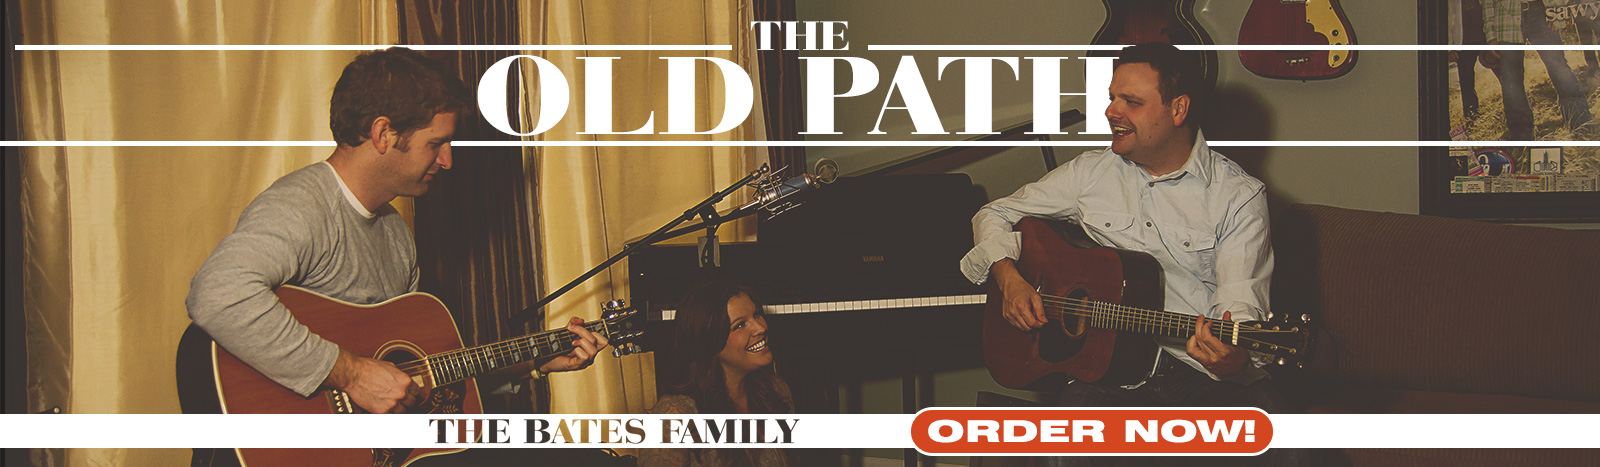 The Old Path, Songs of Our Heritage, by The Bates Family